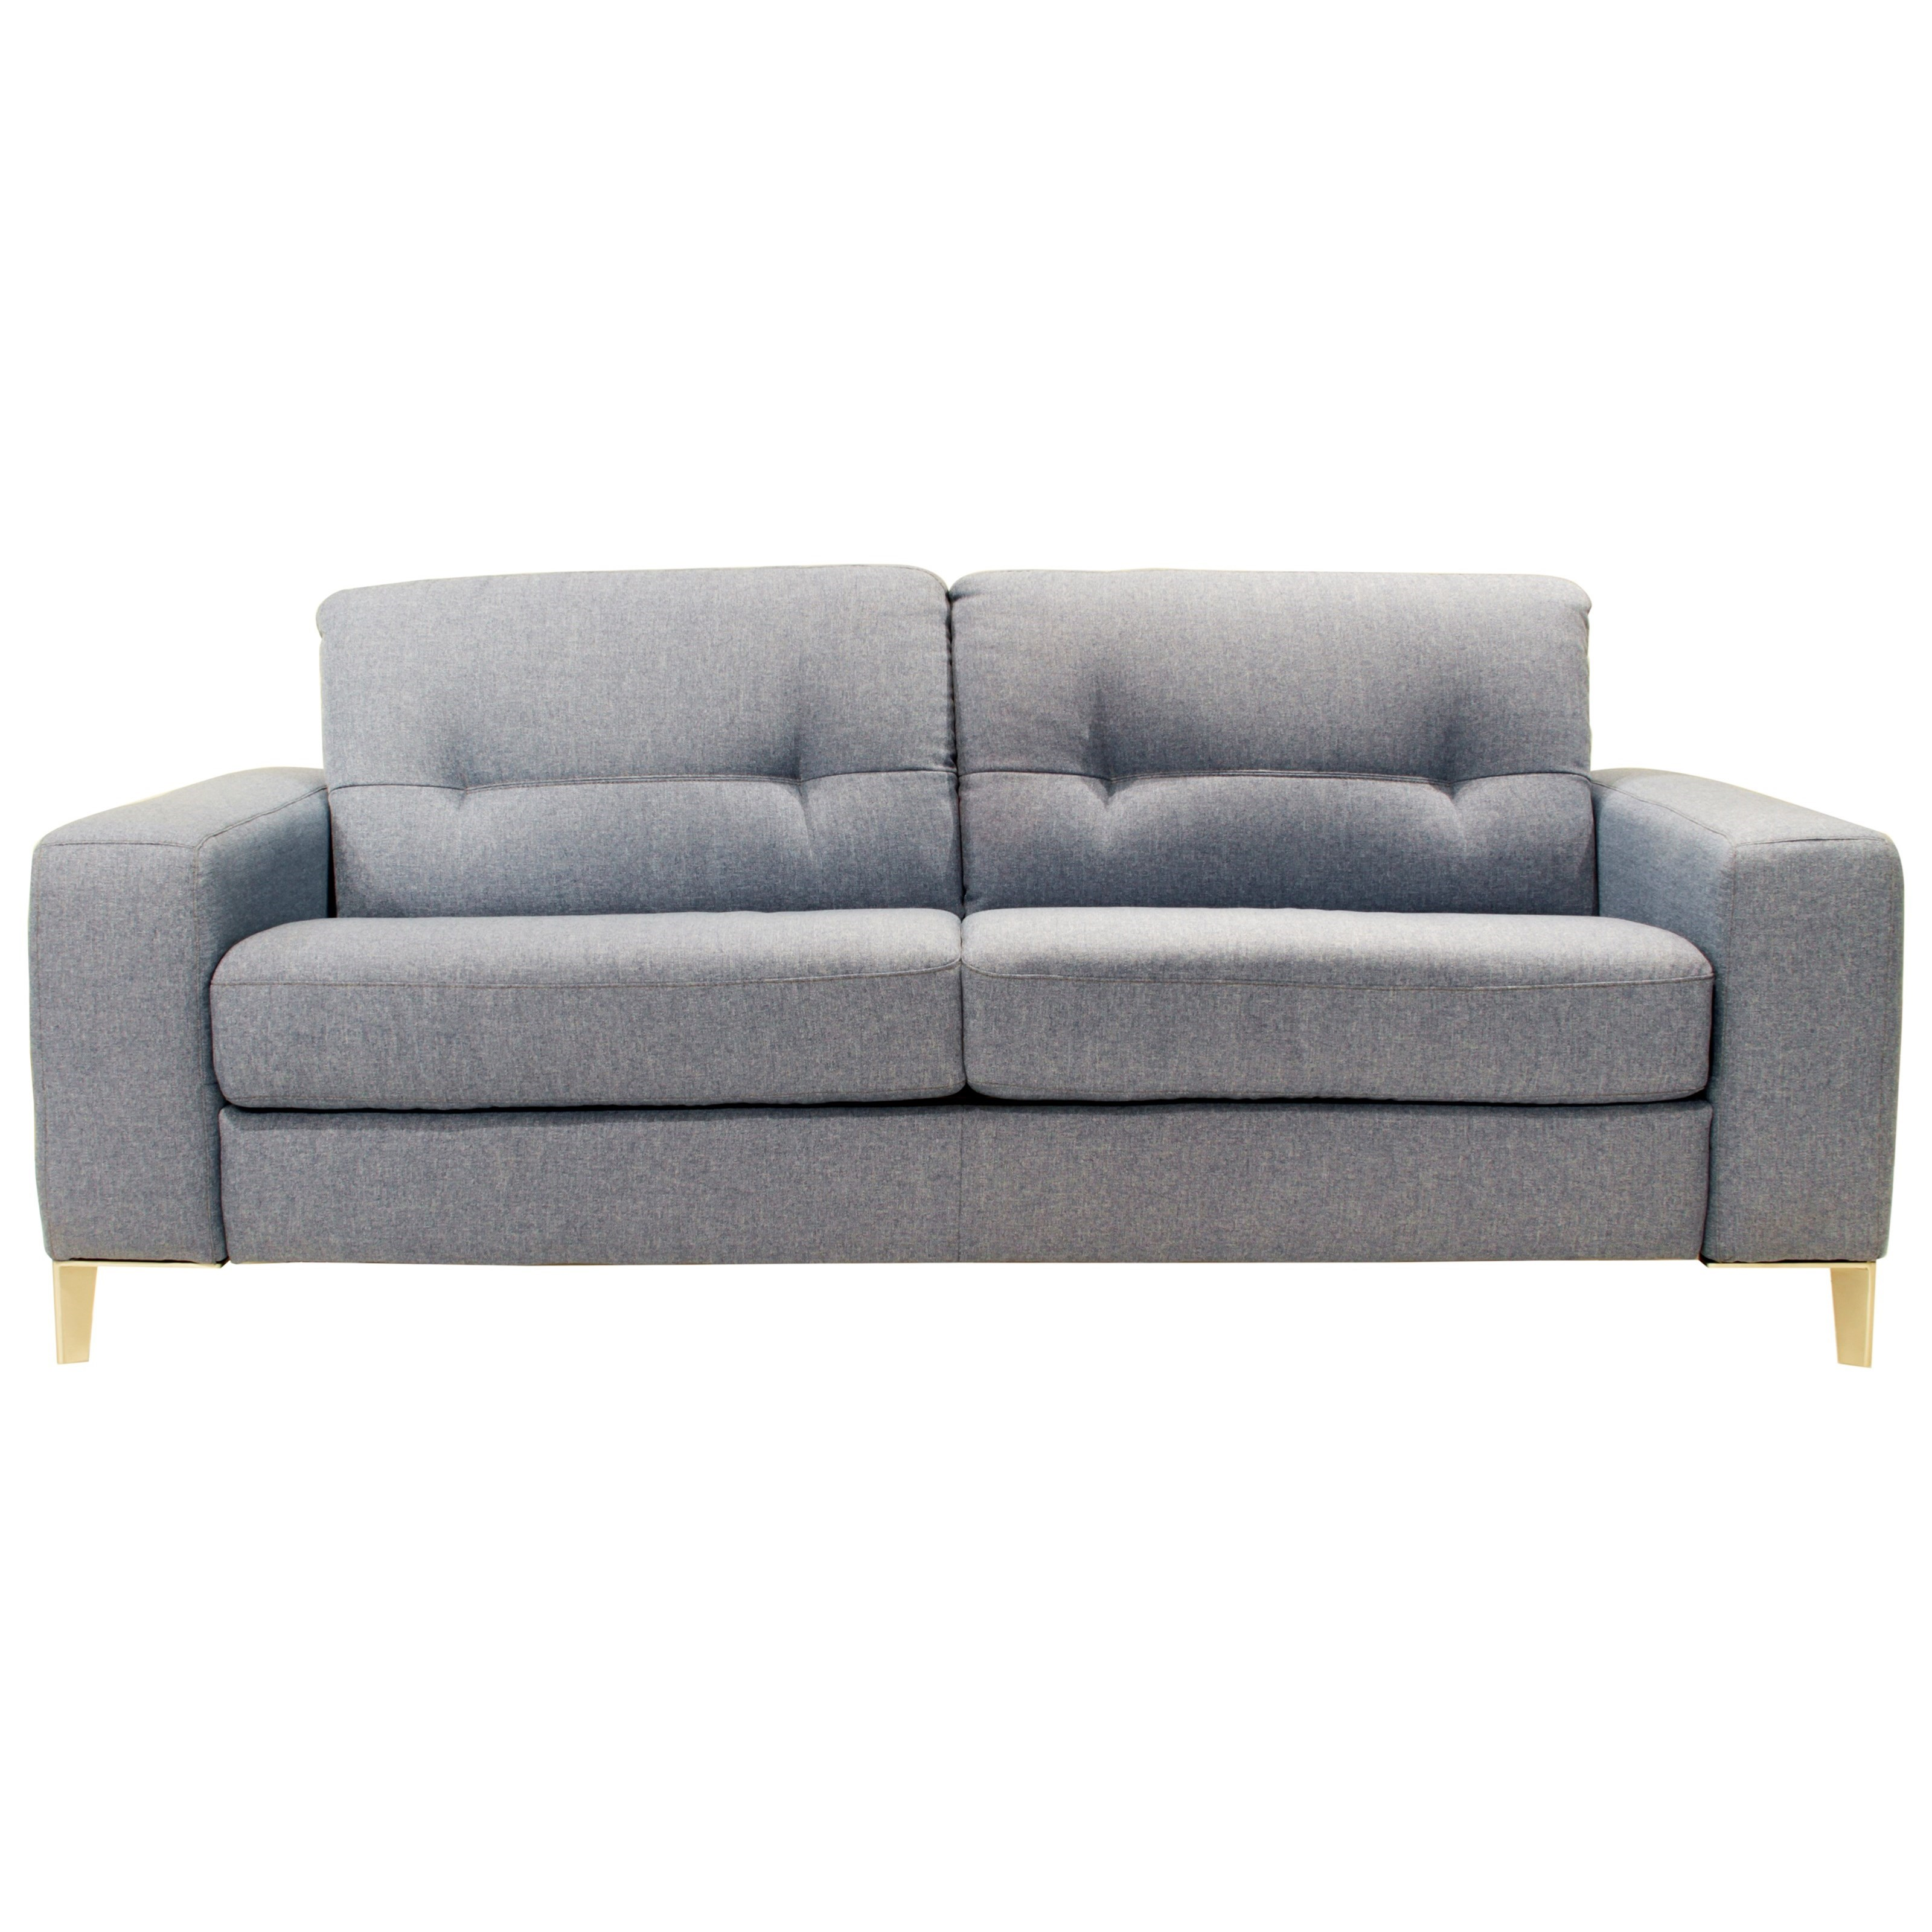 Natuzzi Editions Valerio Sofa - Item Number: B883-009-Denim